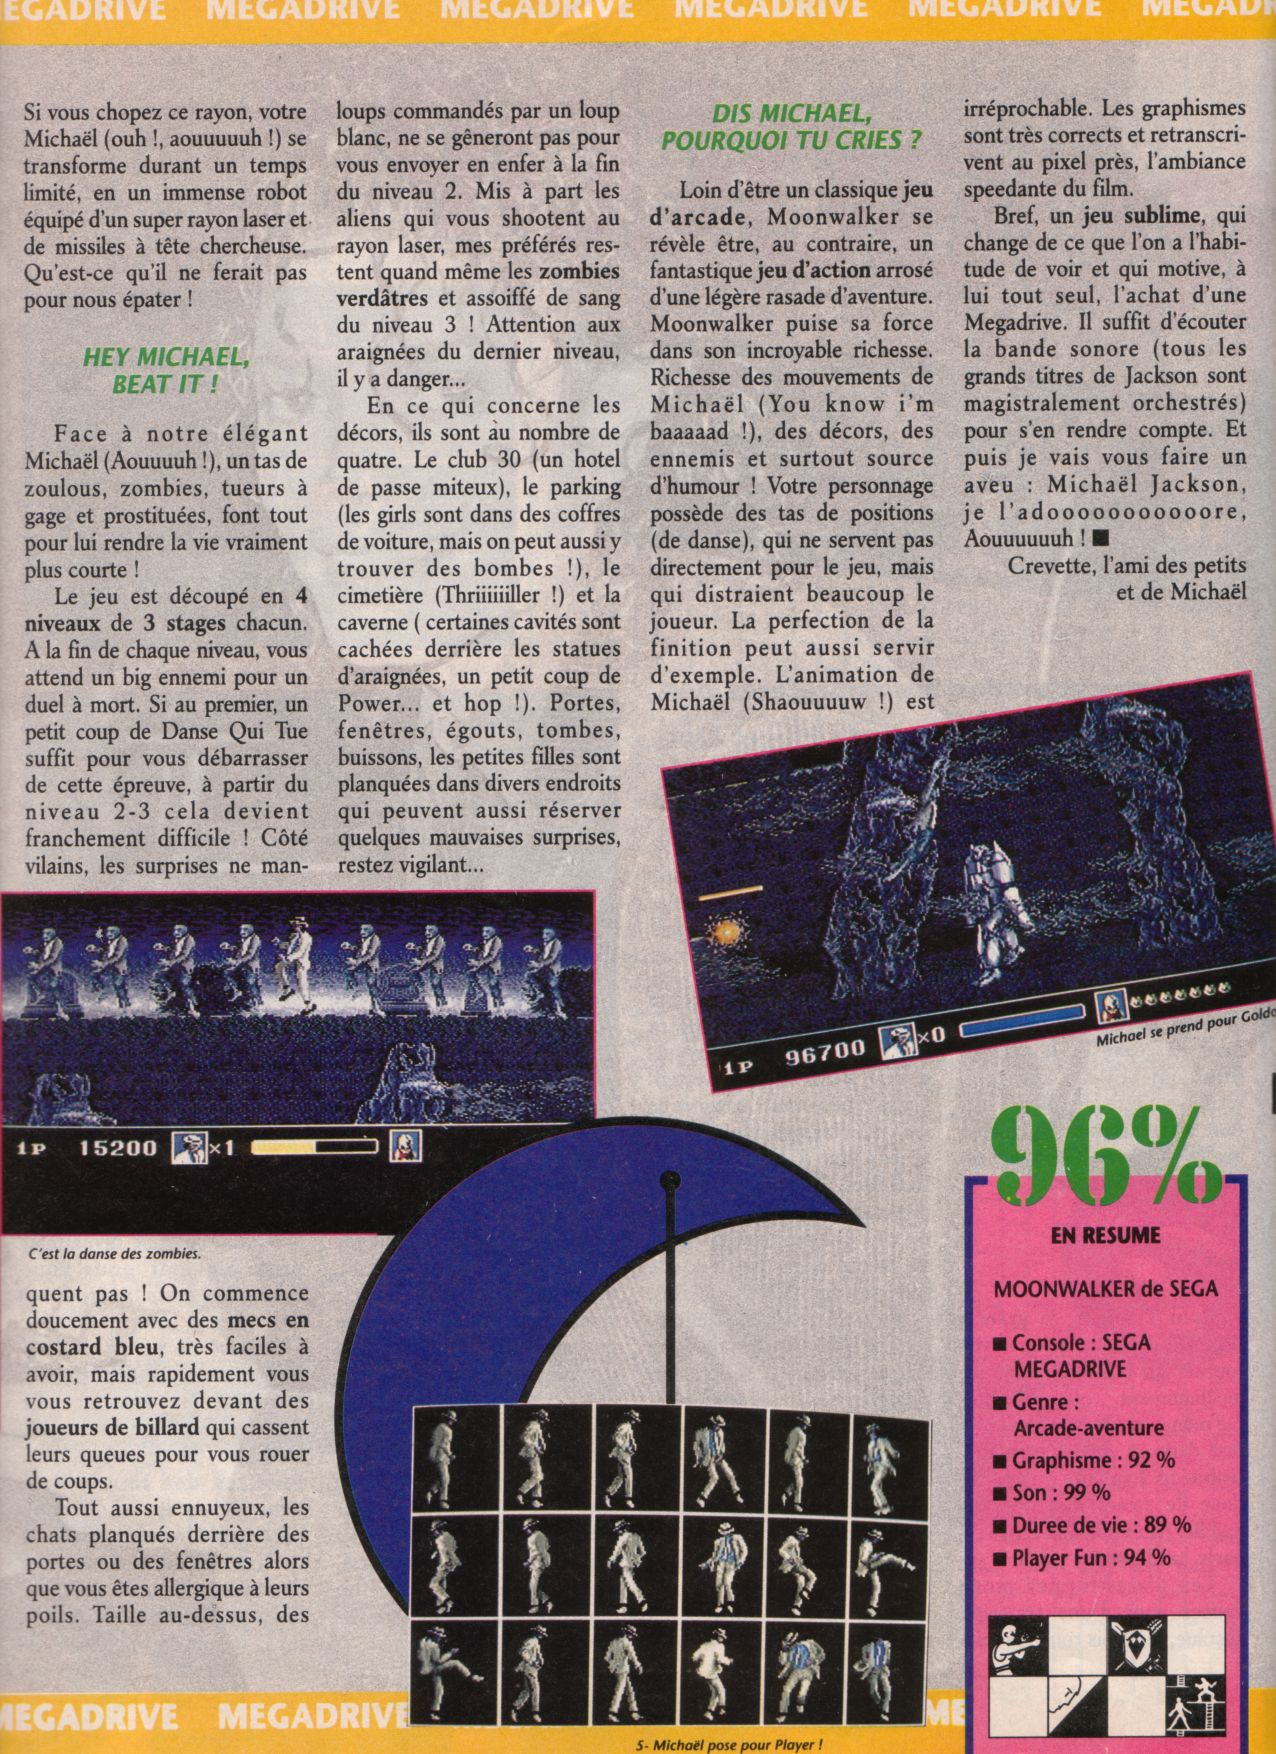 Le topic officiel de la Megadrive - Page 26 Player%20One%20004%20-%20Page%20025%20%281990-12%29